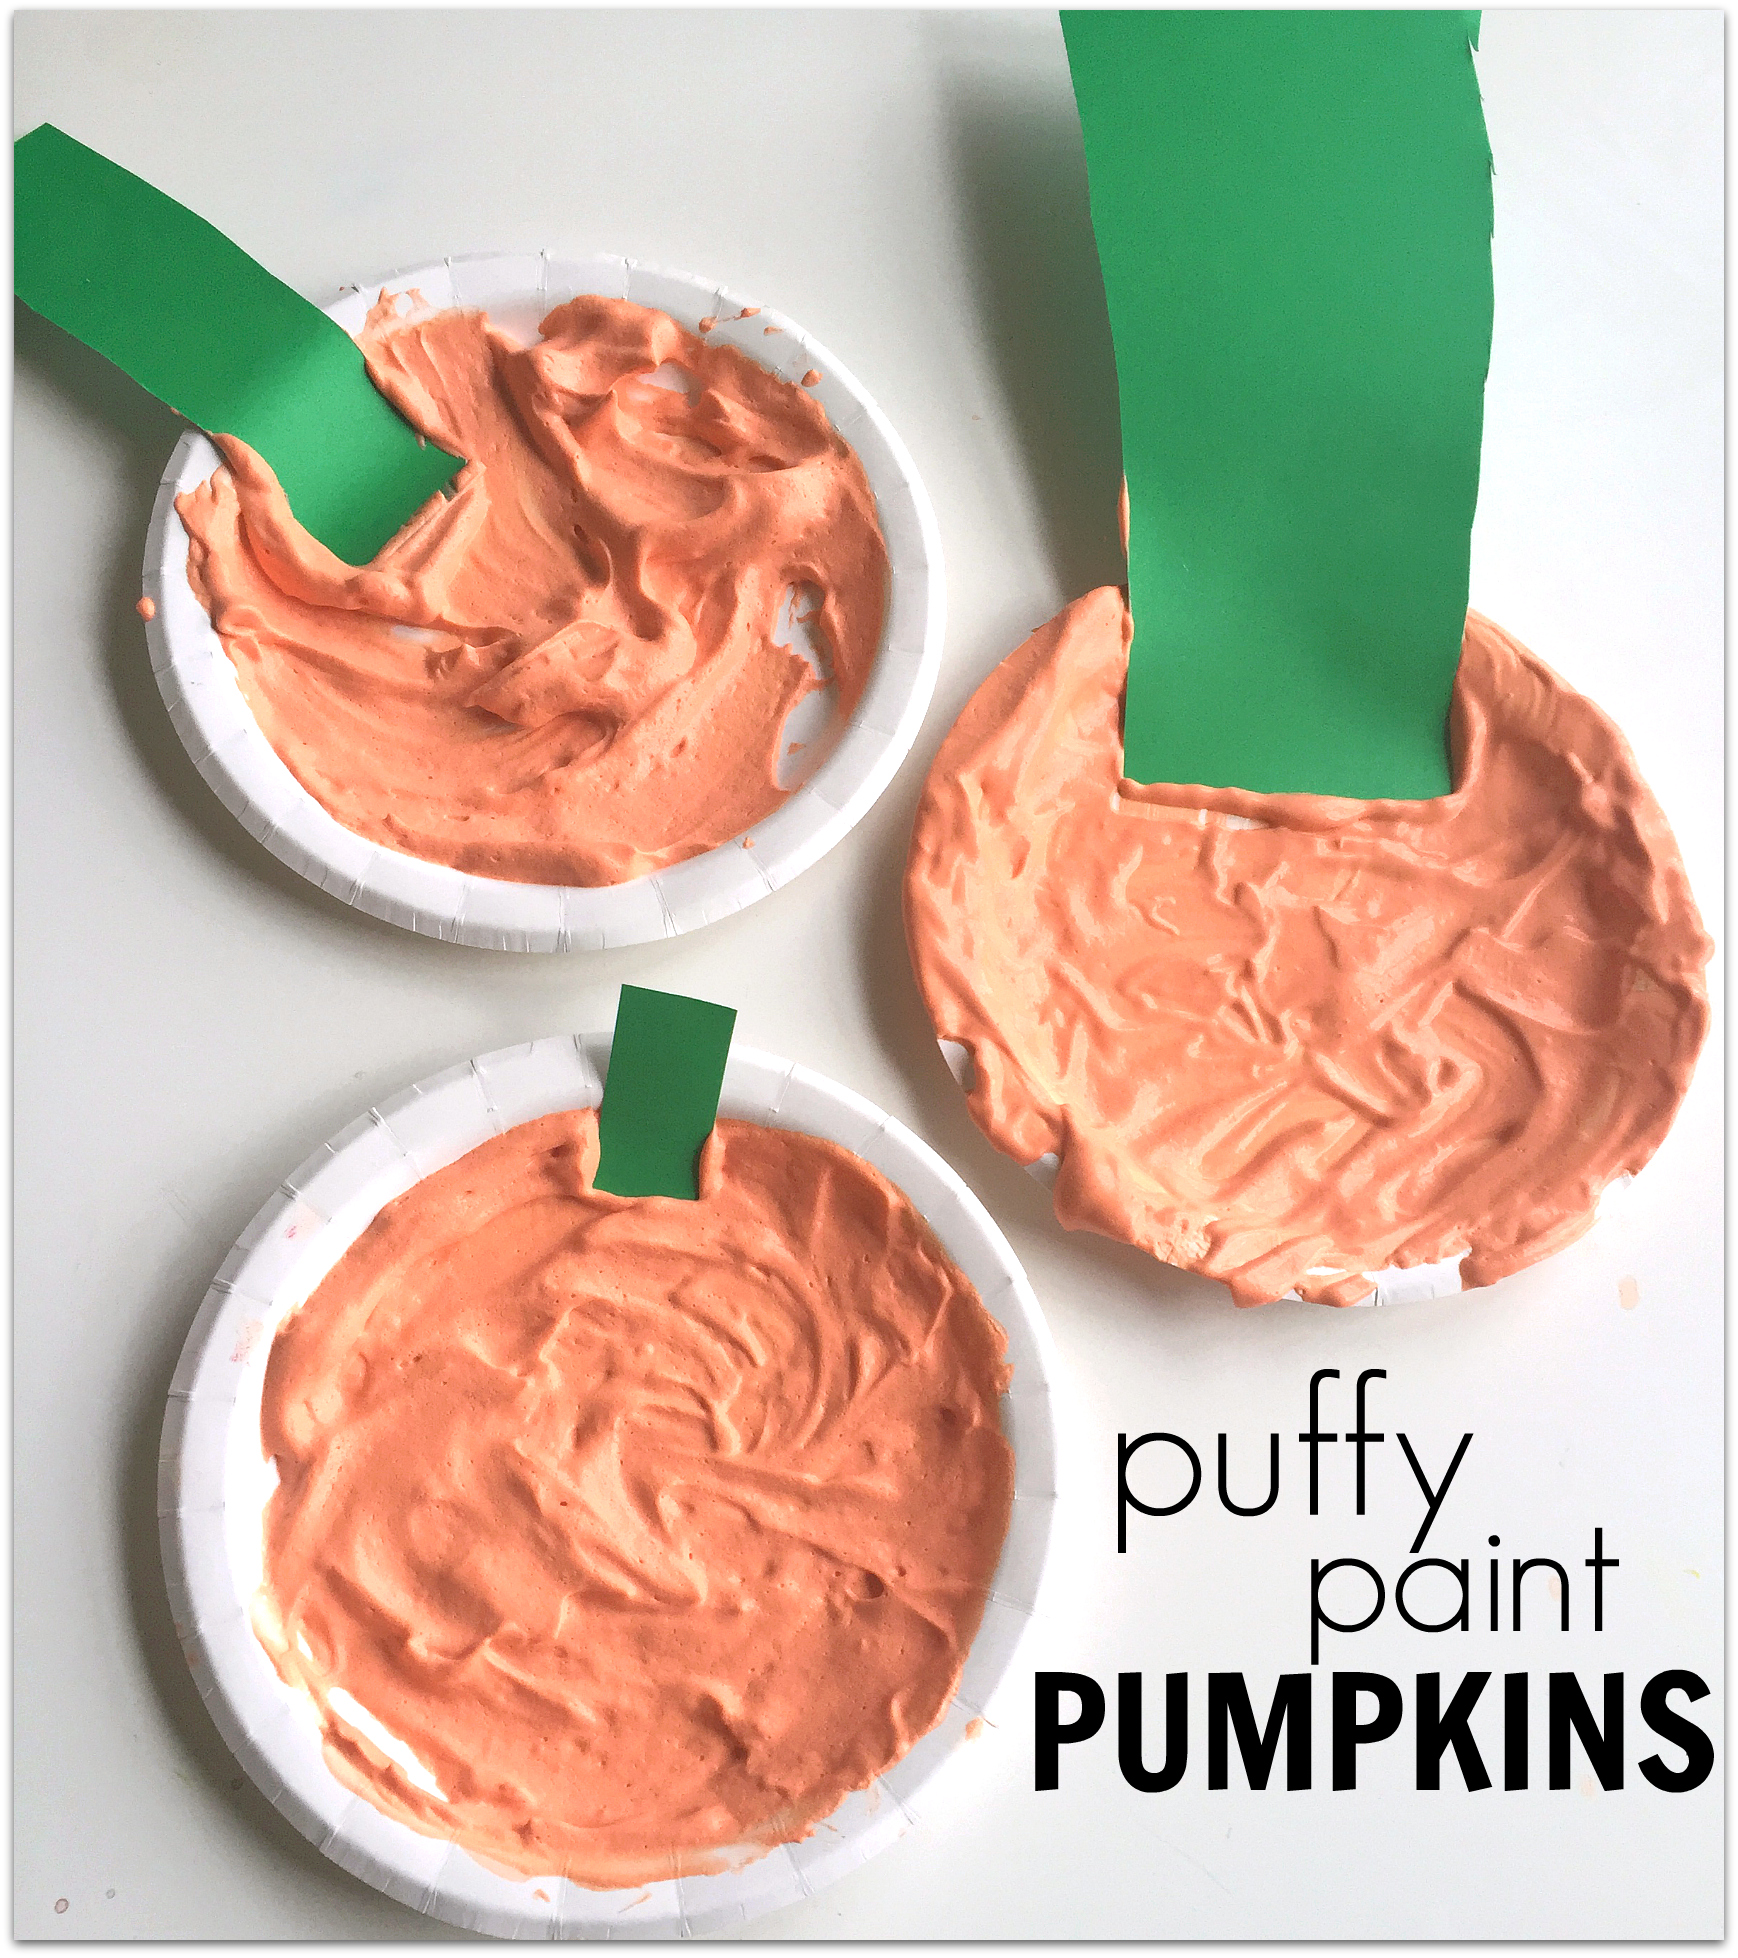 Enjoy a fun sensory experience with these Puffy Paint Pumpkins! Here you'll find a variety of easy Halloween crafts for your kids, toddlers and preschoolers. #Howweelearn #Halloweencrafts #Craftsforkids